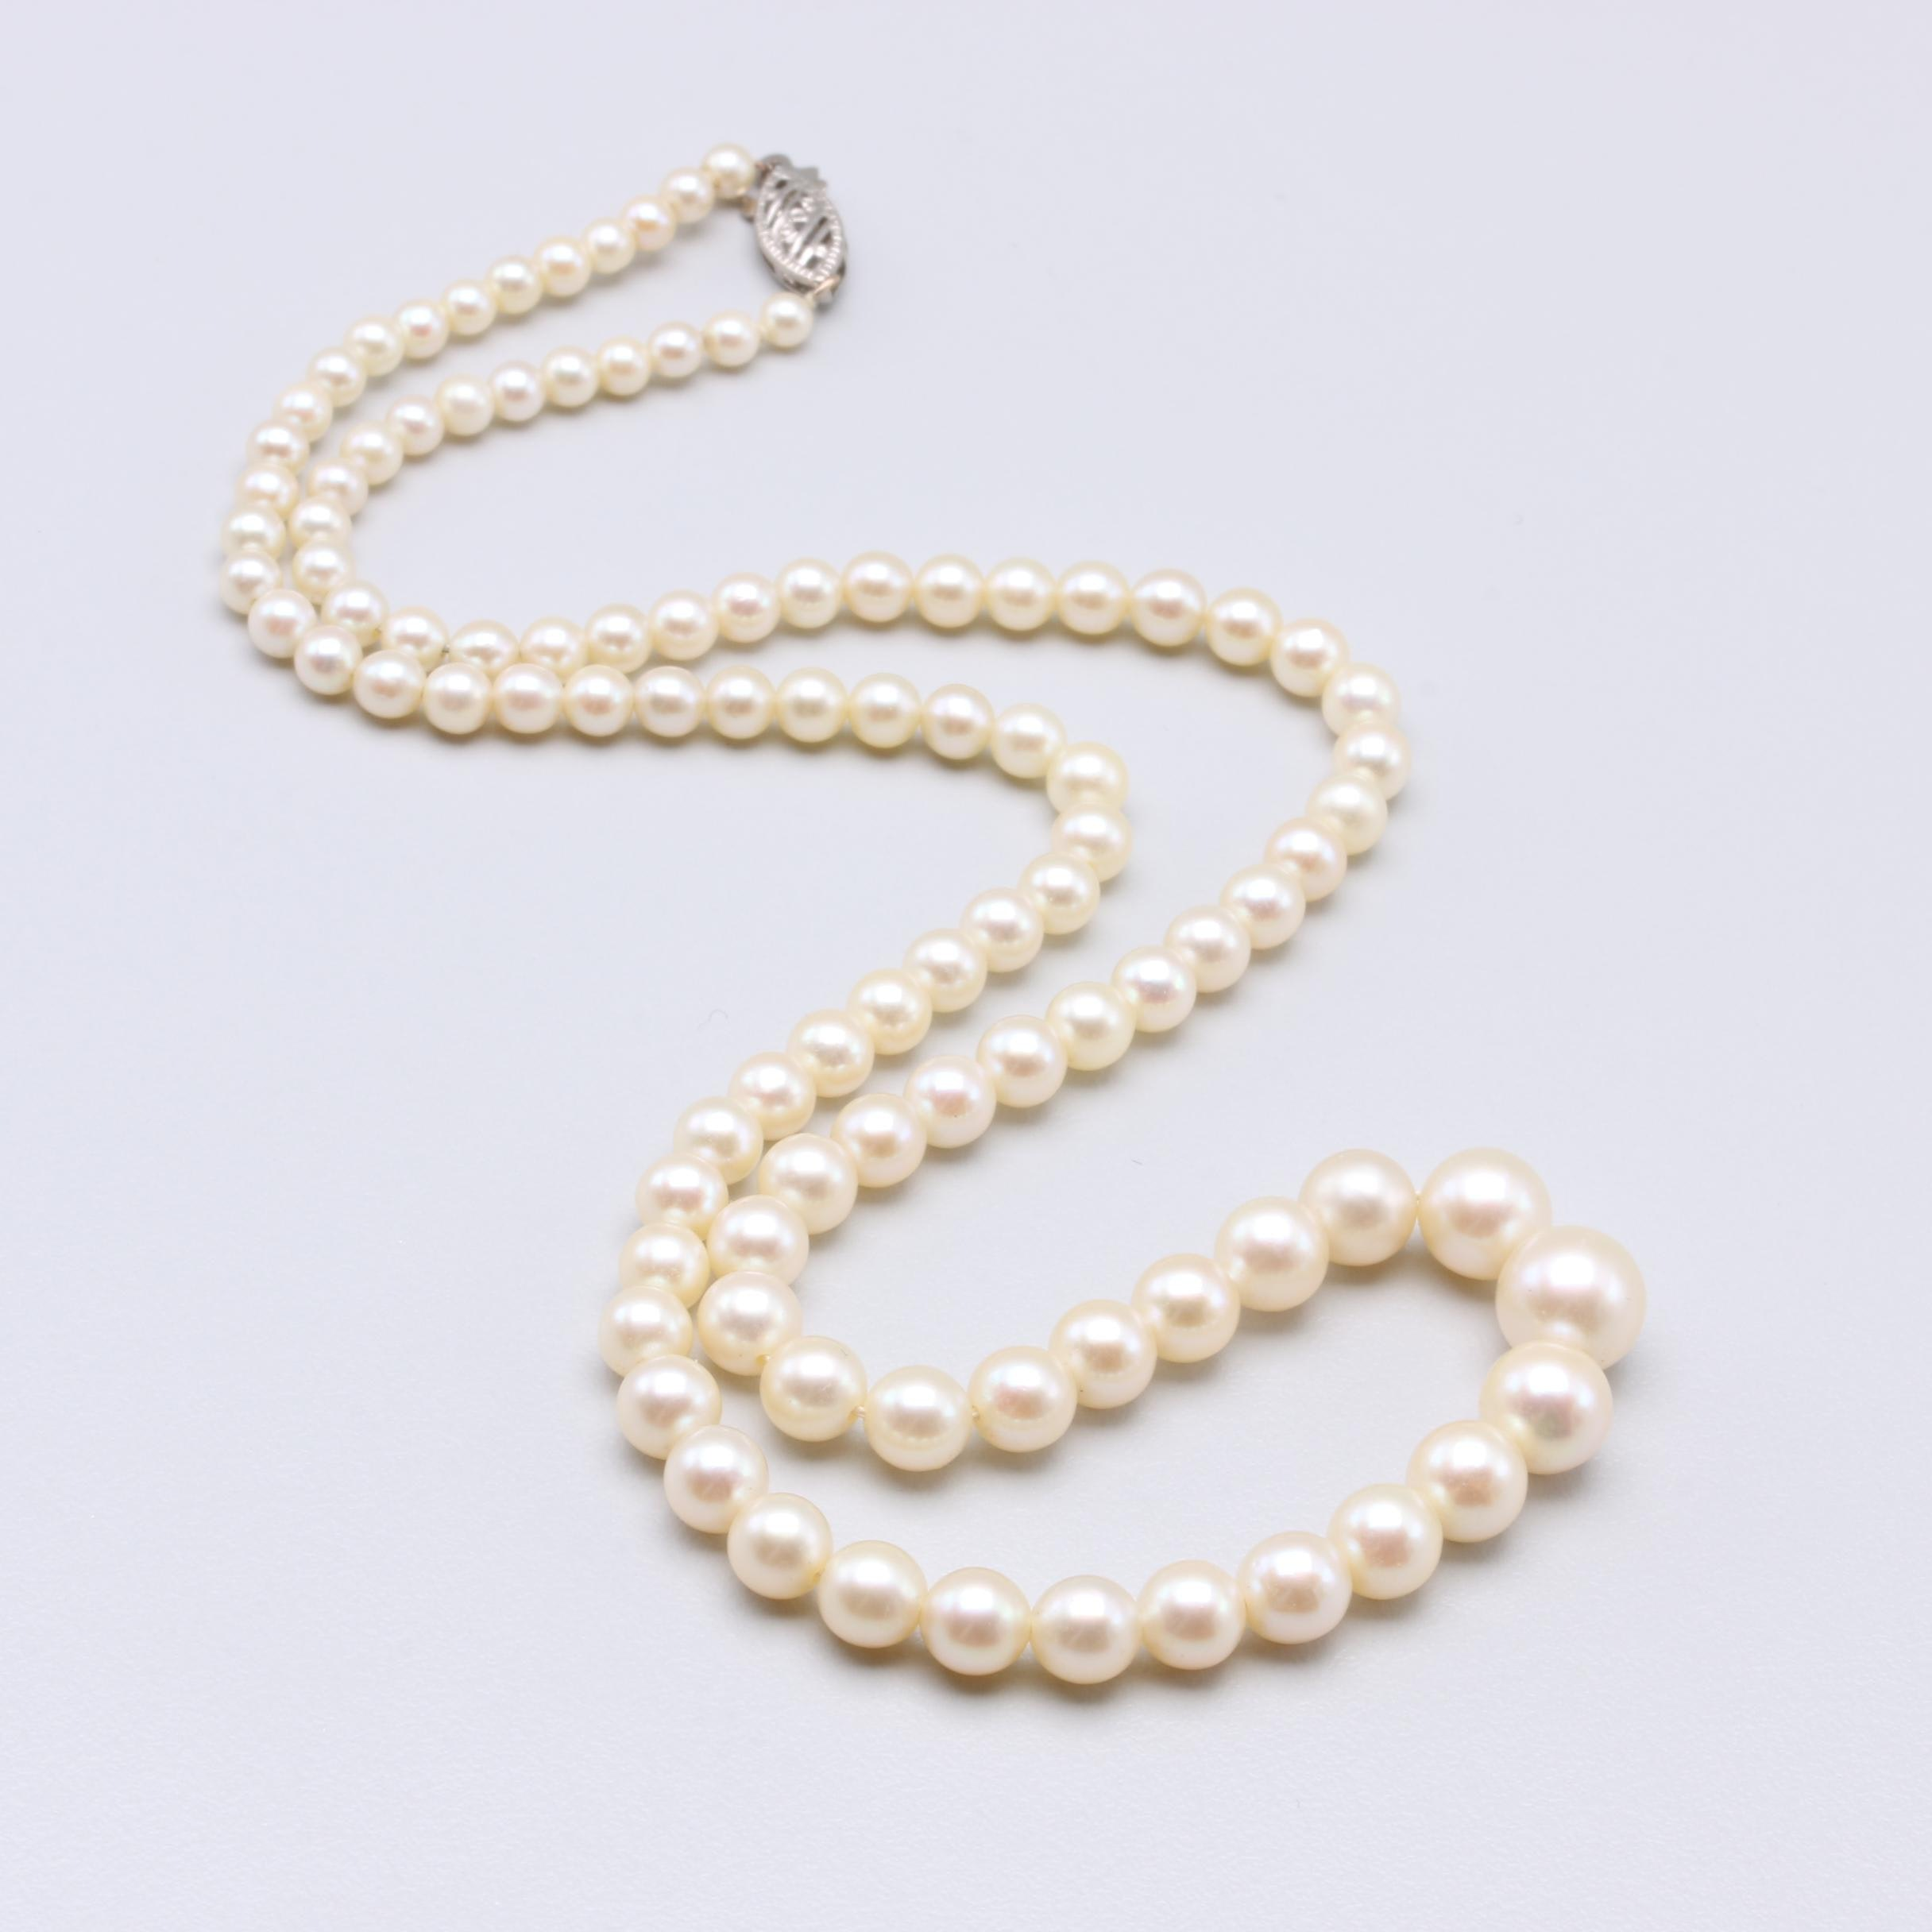 10K White Gold Cultured Pearl Necklace